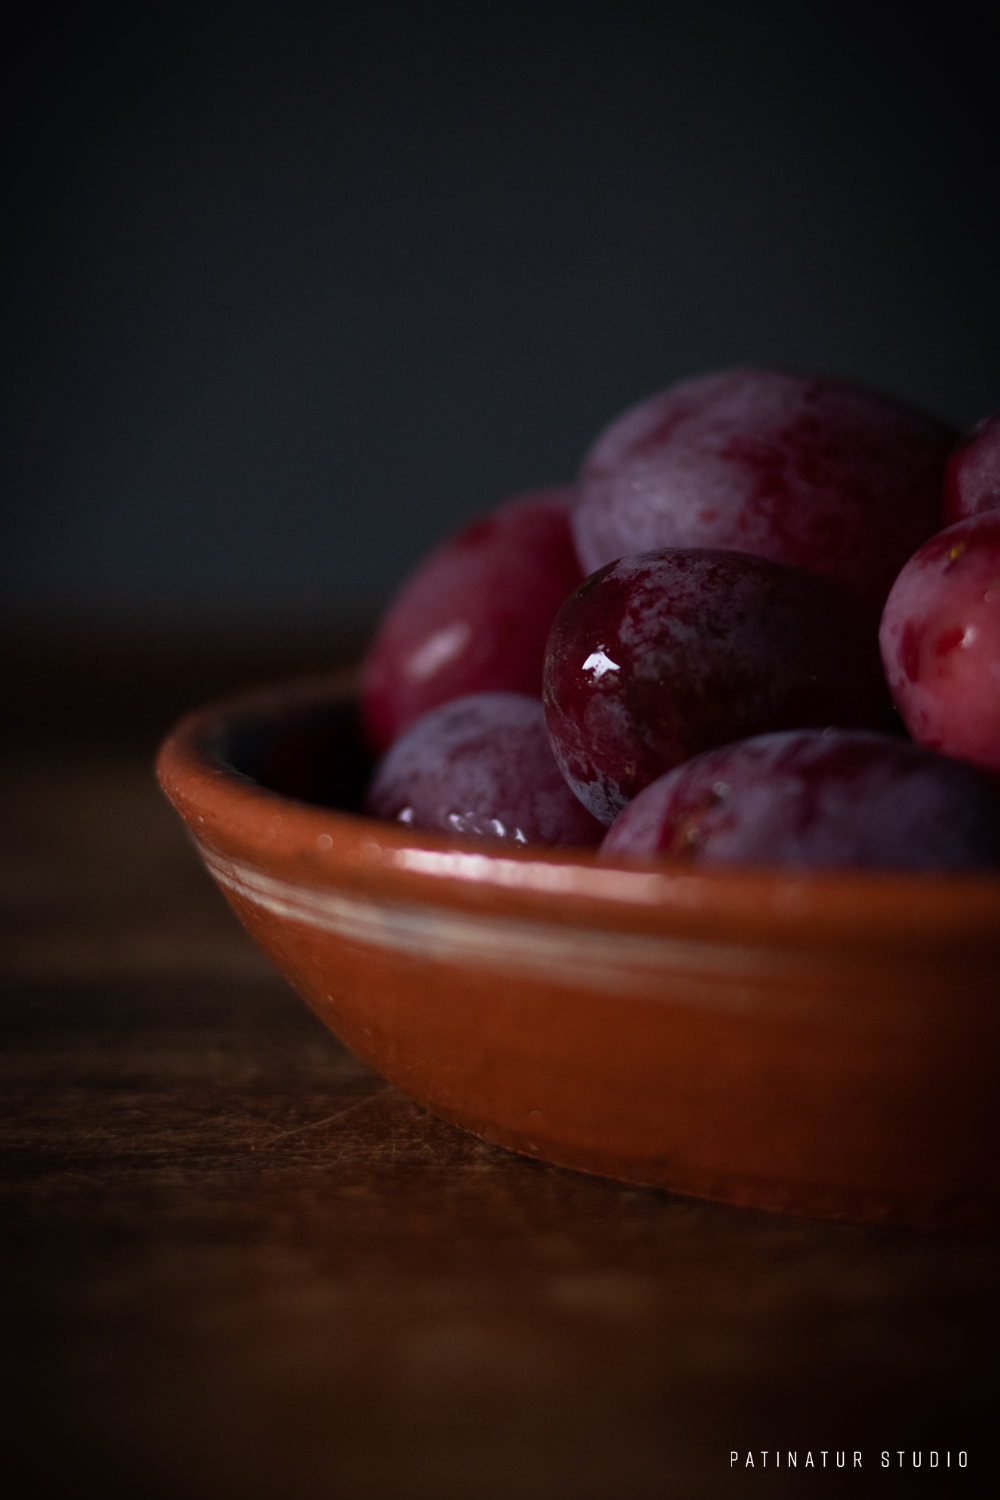 Photo art | Dark and moody still life with plums i rustic terracotta bowl